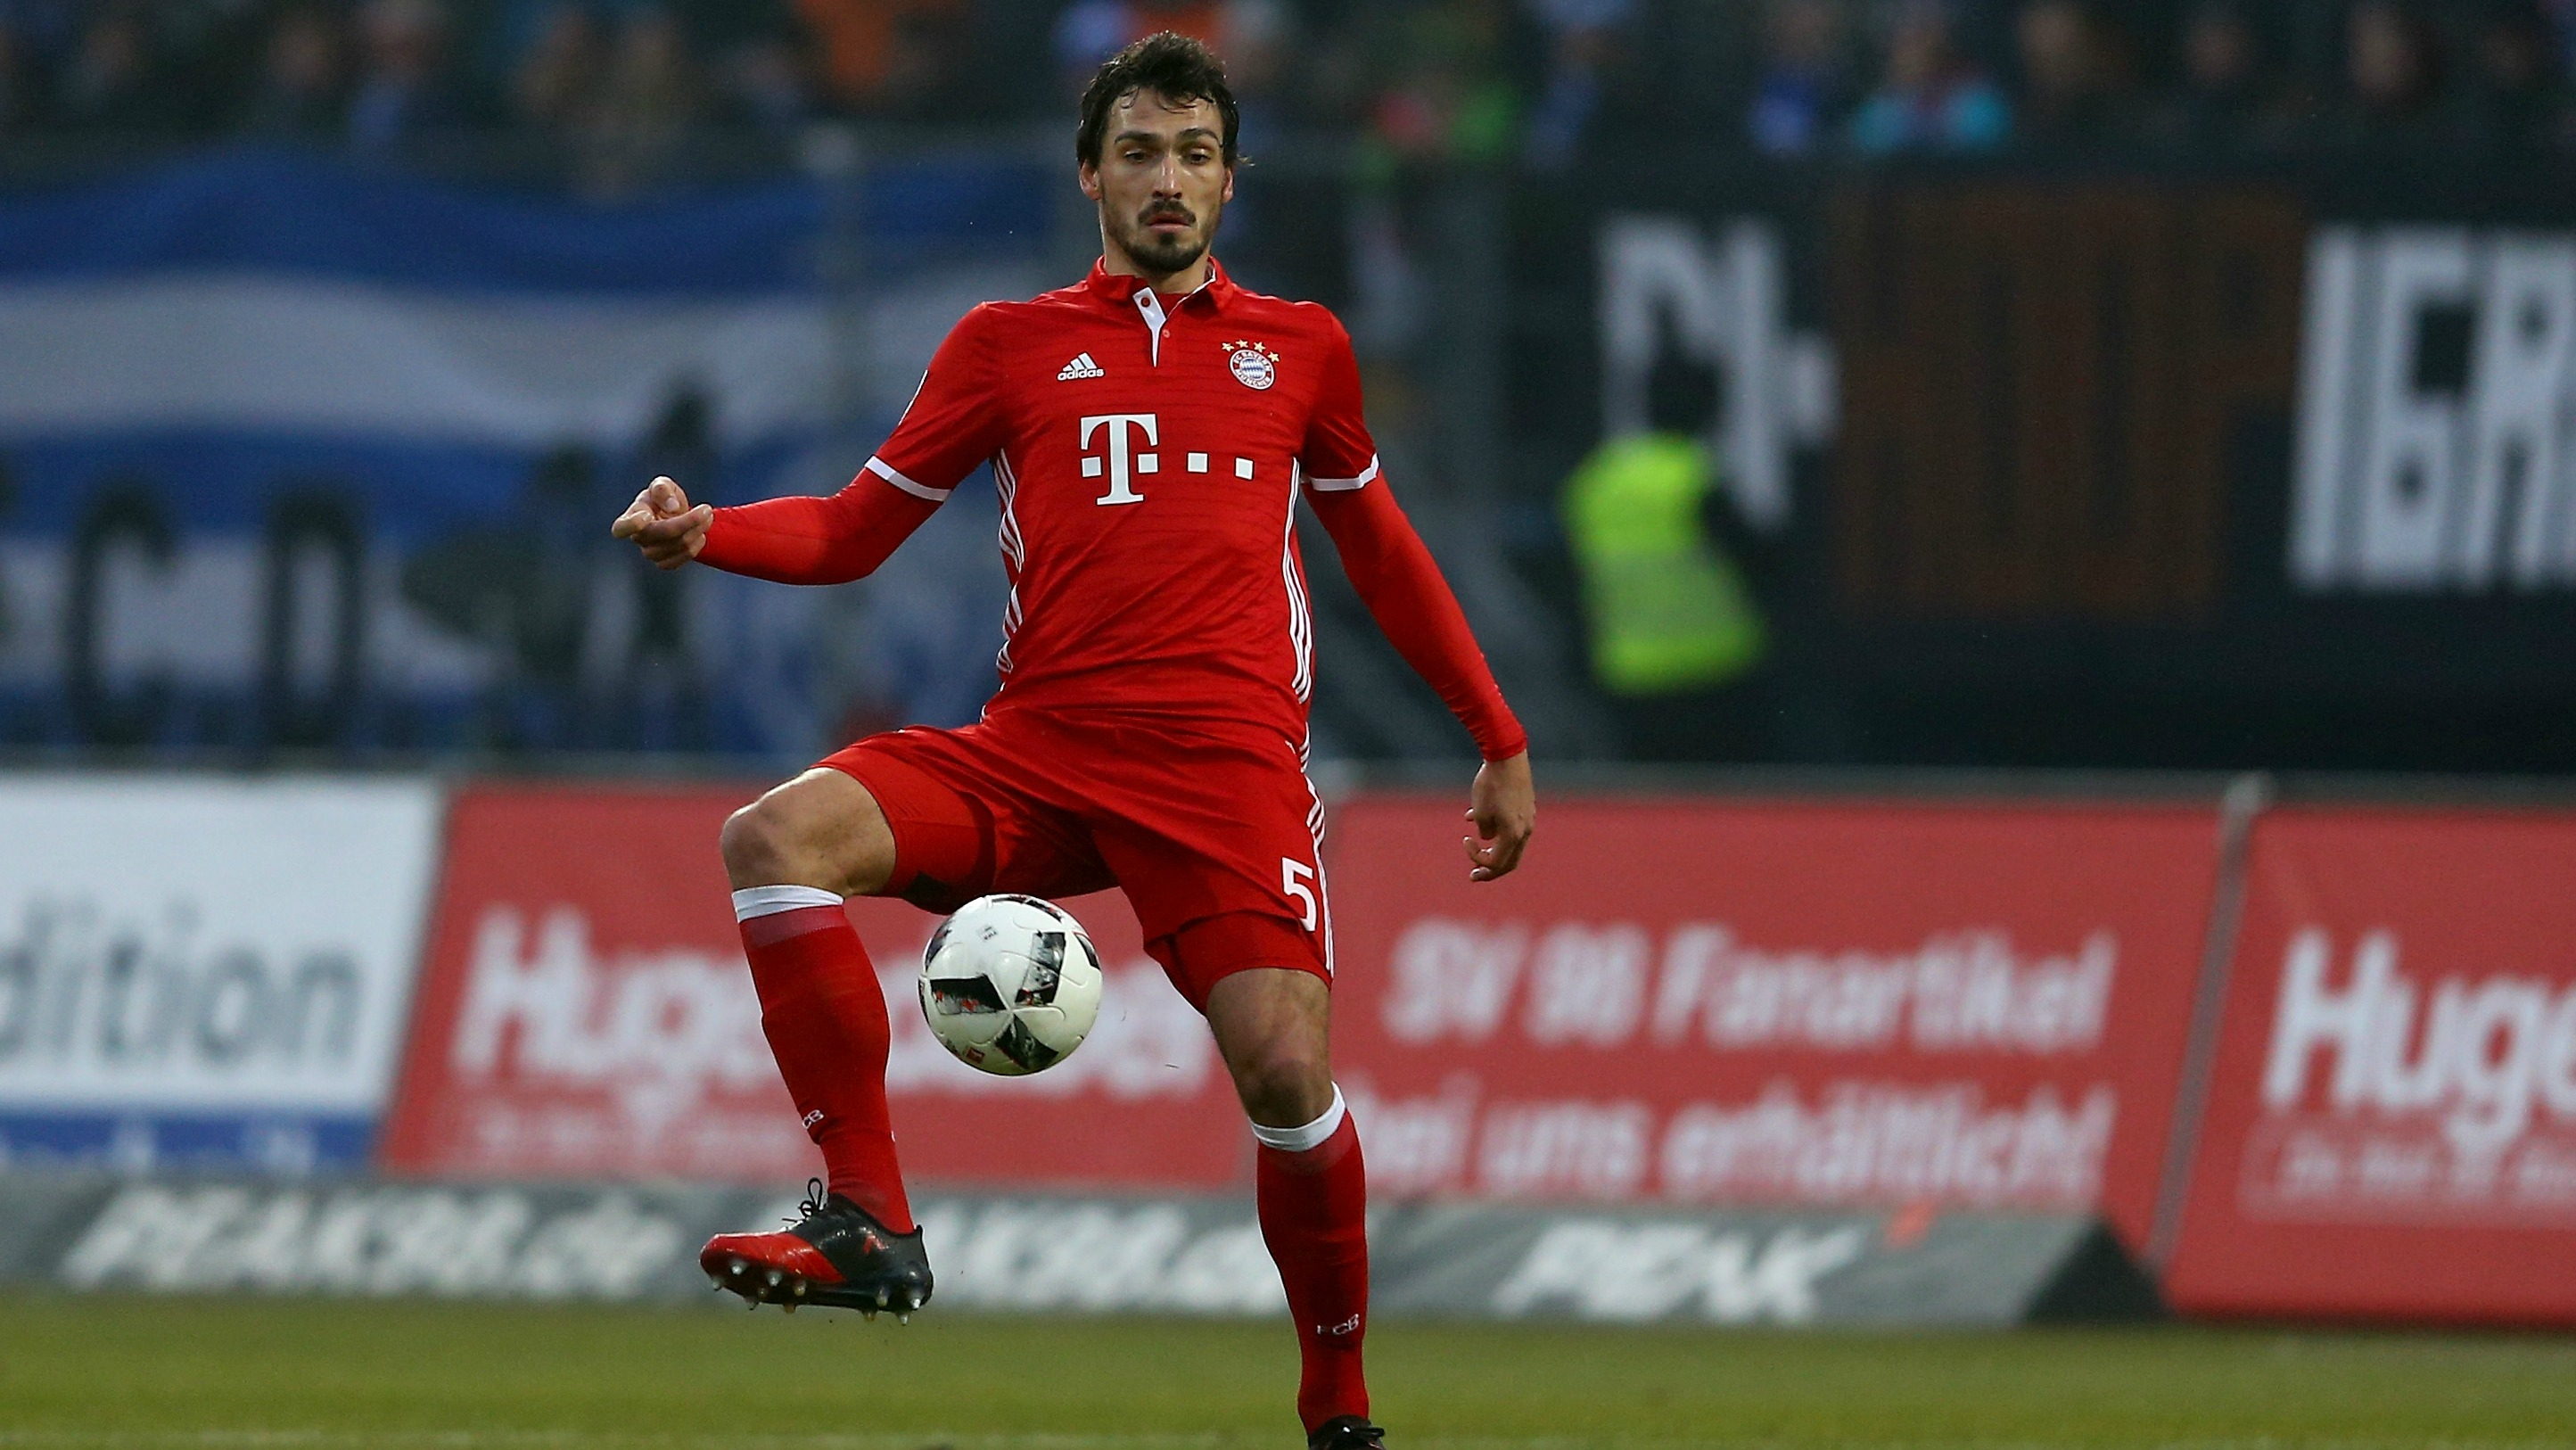 Mats Hummels reveals why he dyed his hair blonde